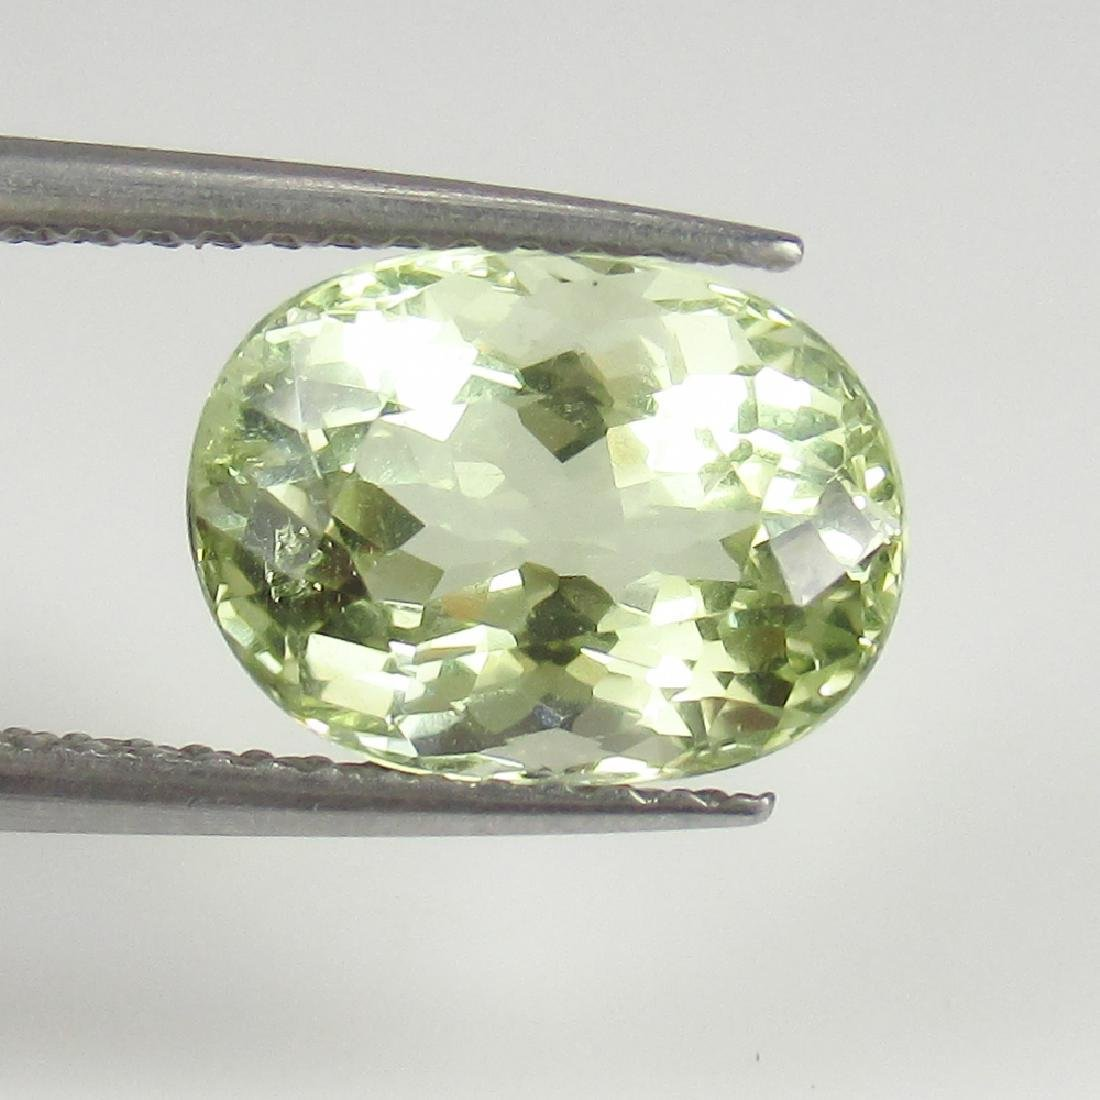 2.63 Ct Genuine Loose Exclusive Rich Luster Green Beryl